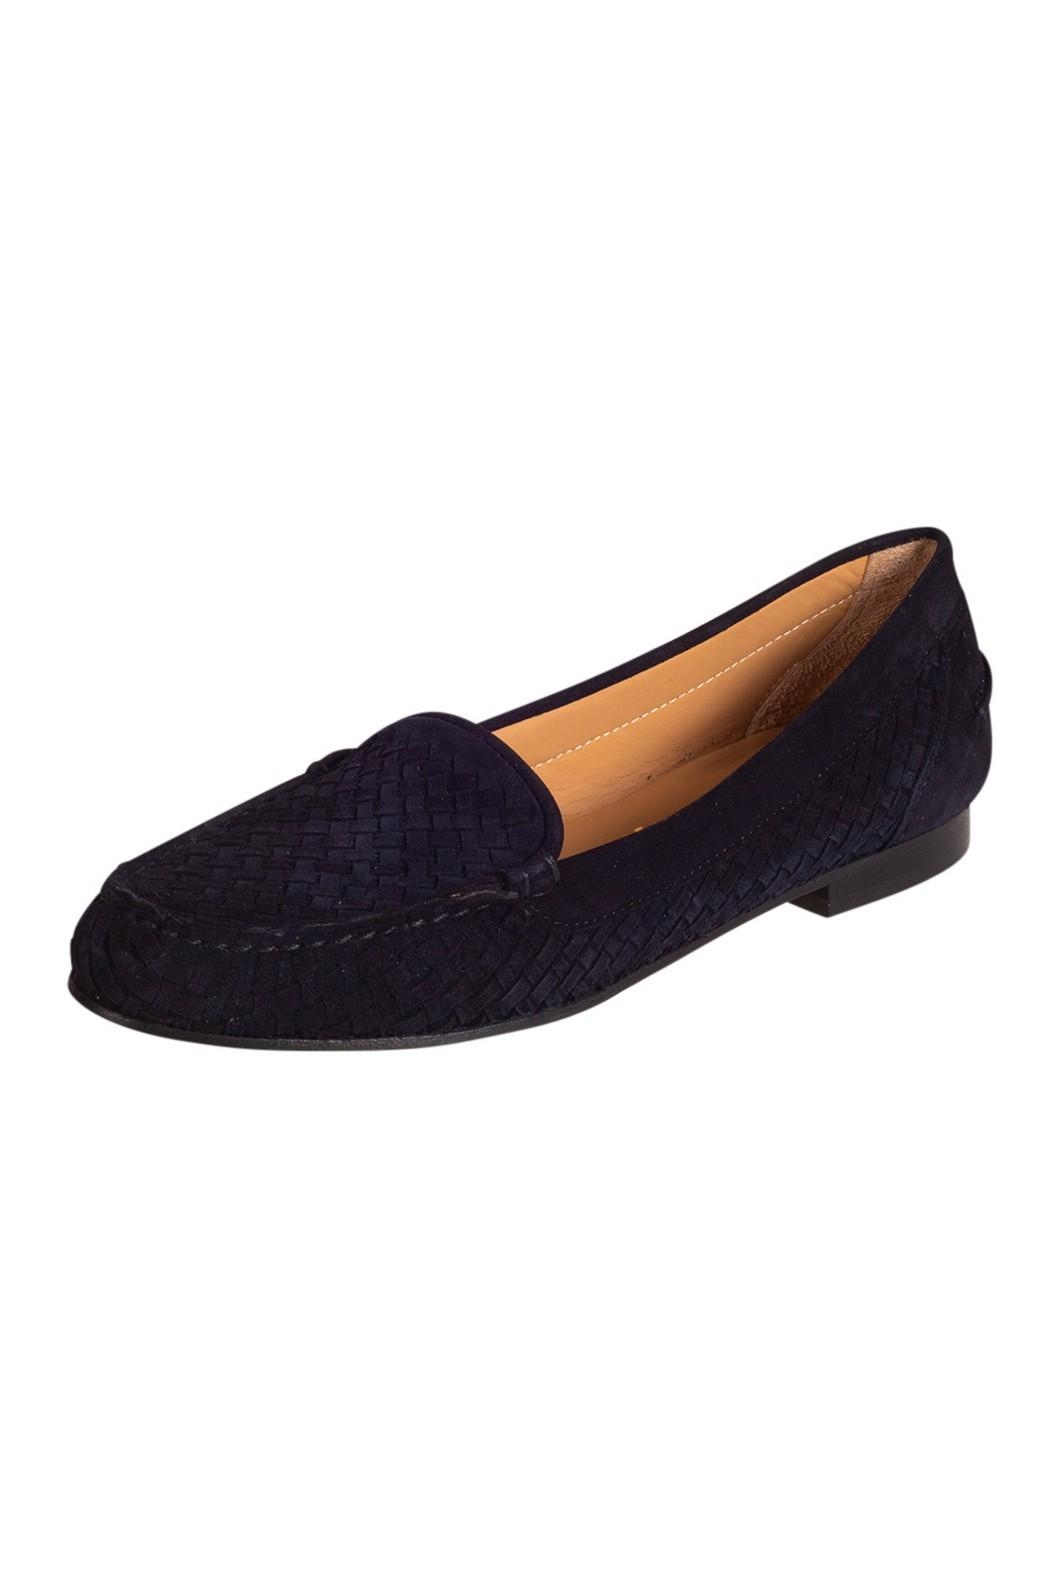 Pascucci Navy Suede Loafer - Front Full Image